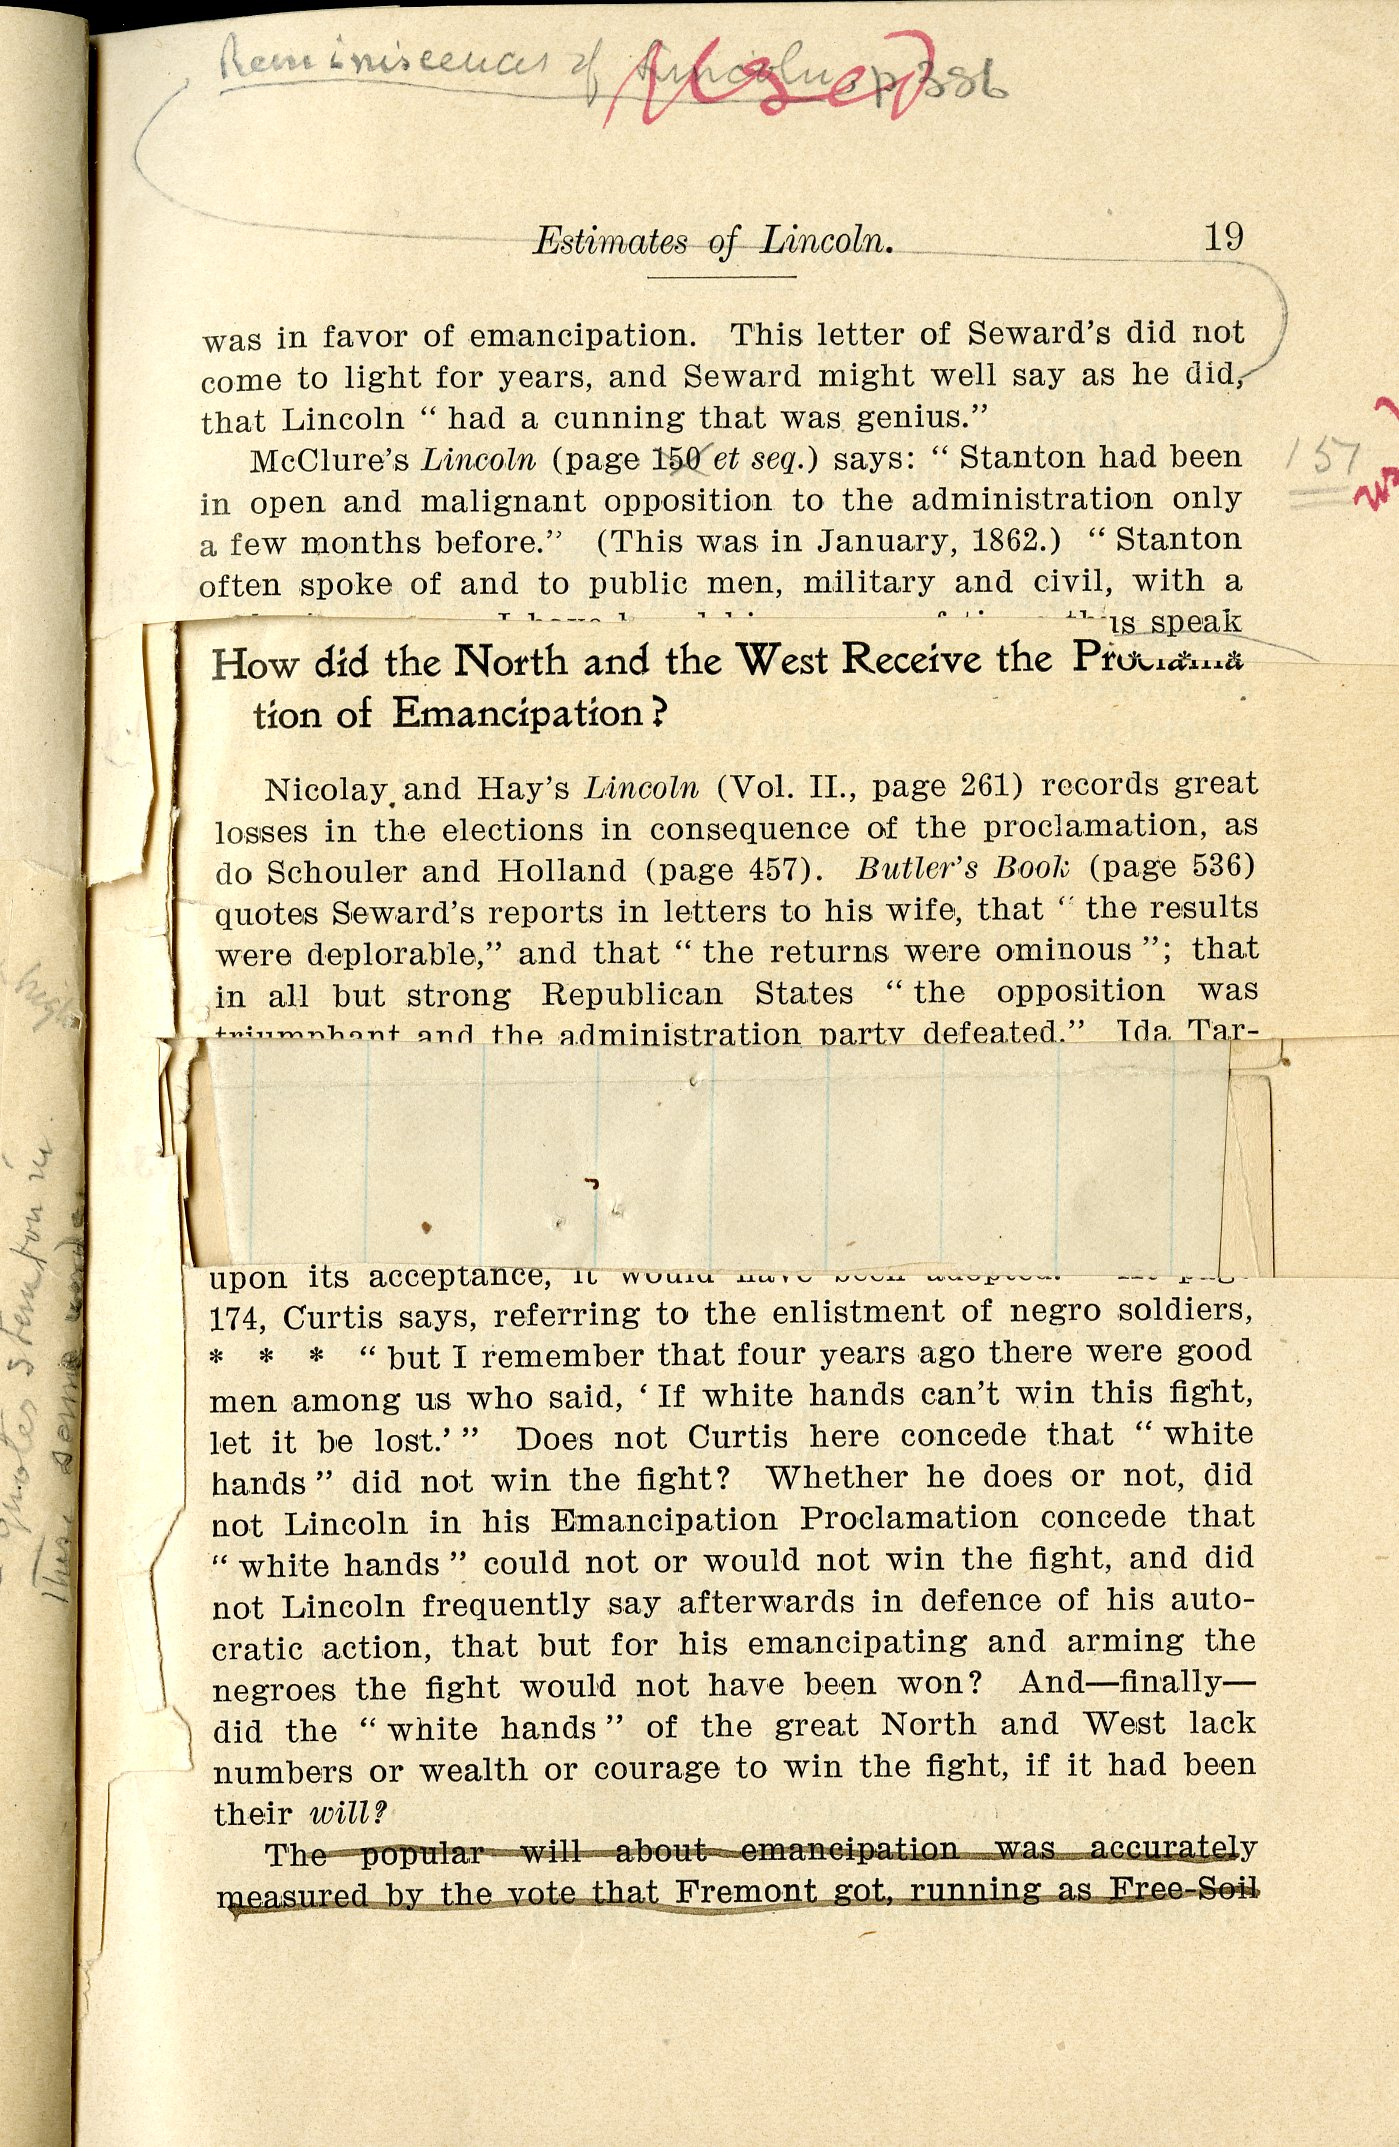 Inside pages of Minor's annotated copy of The Real Lincoln (1901) with cut text and notations.